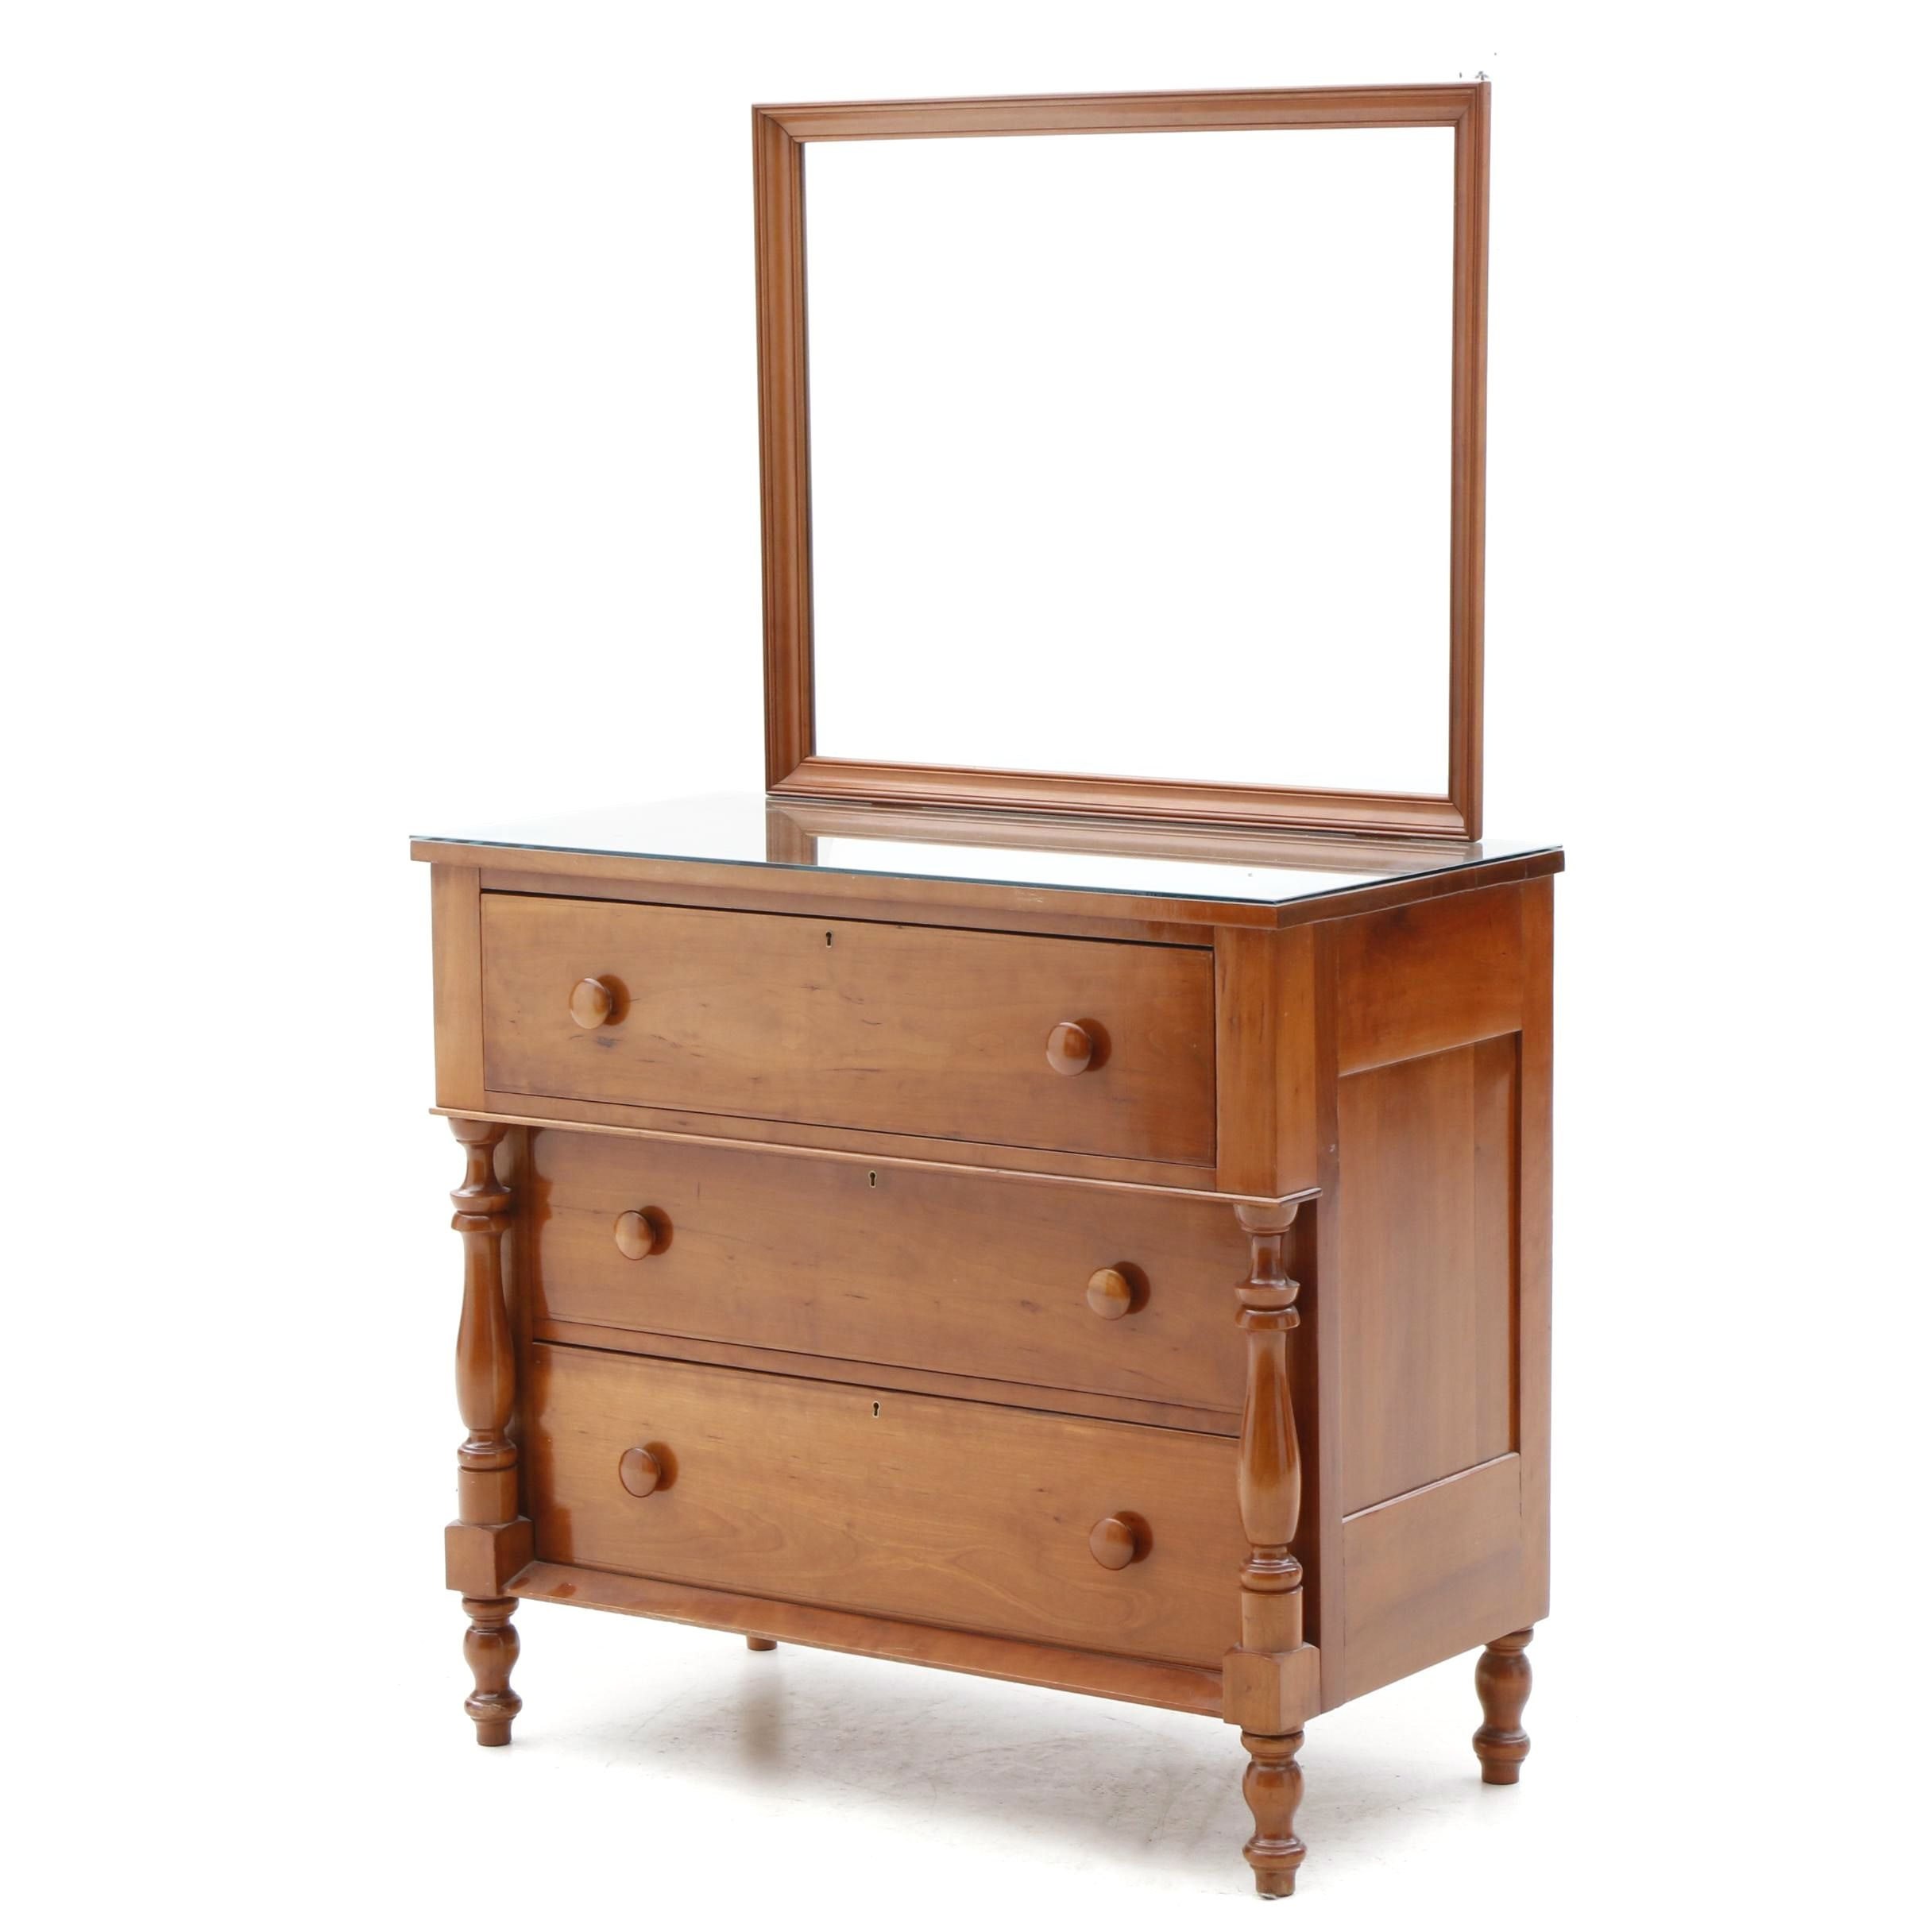 American Empire Style Cherrywood Chest of Drawers, Mid-20th Century